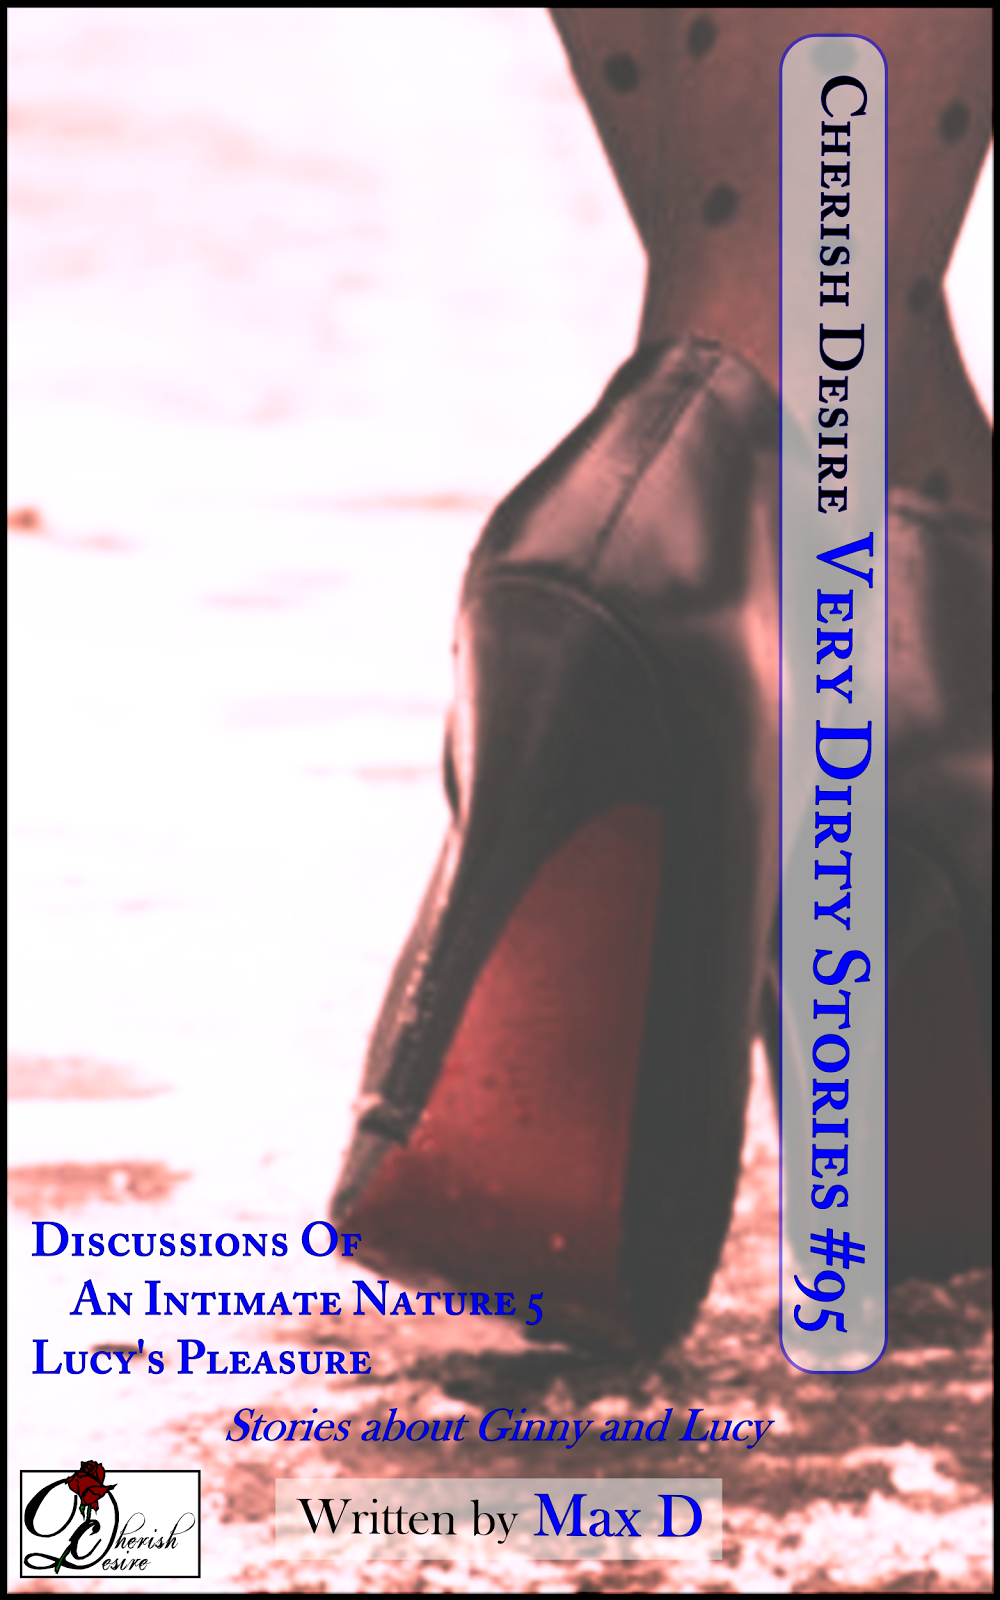 Cherish Desire: Very Dirty Stories #95, Max D, erotica